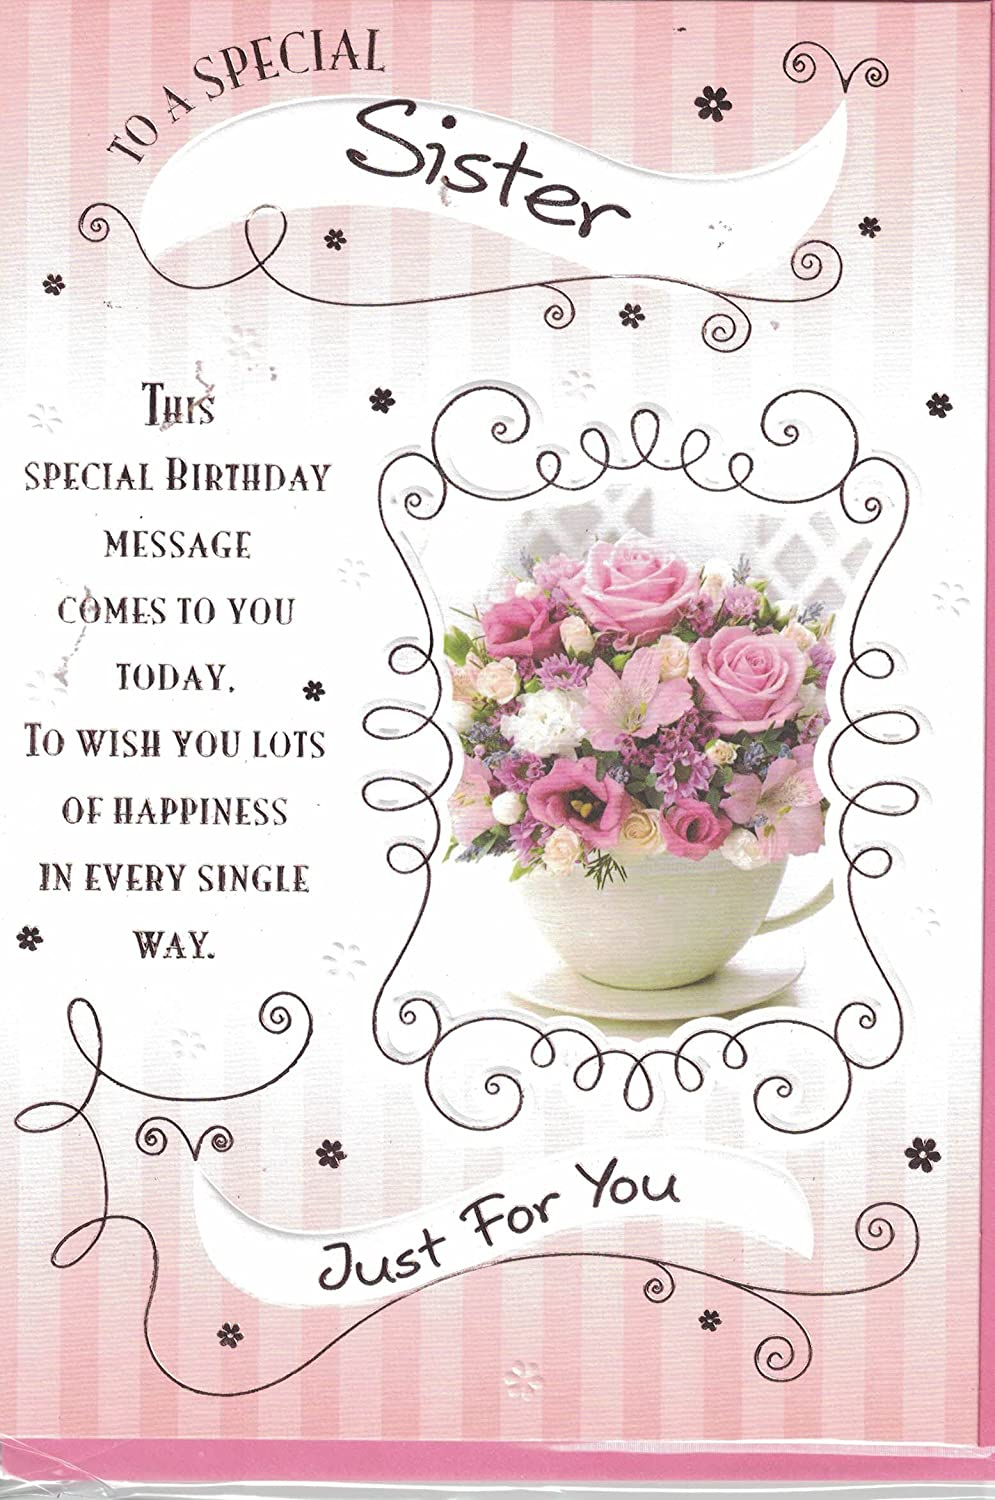 Sister birthday card to a wonderful sister happy birthday enjoy sister birthday card to a wonderful sister happy birthday enjoy your special day modern pink flowers design lovely verse great quality card izmirmasajfo